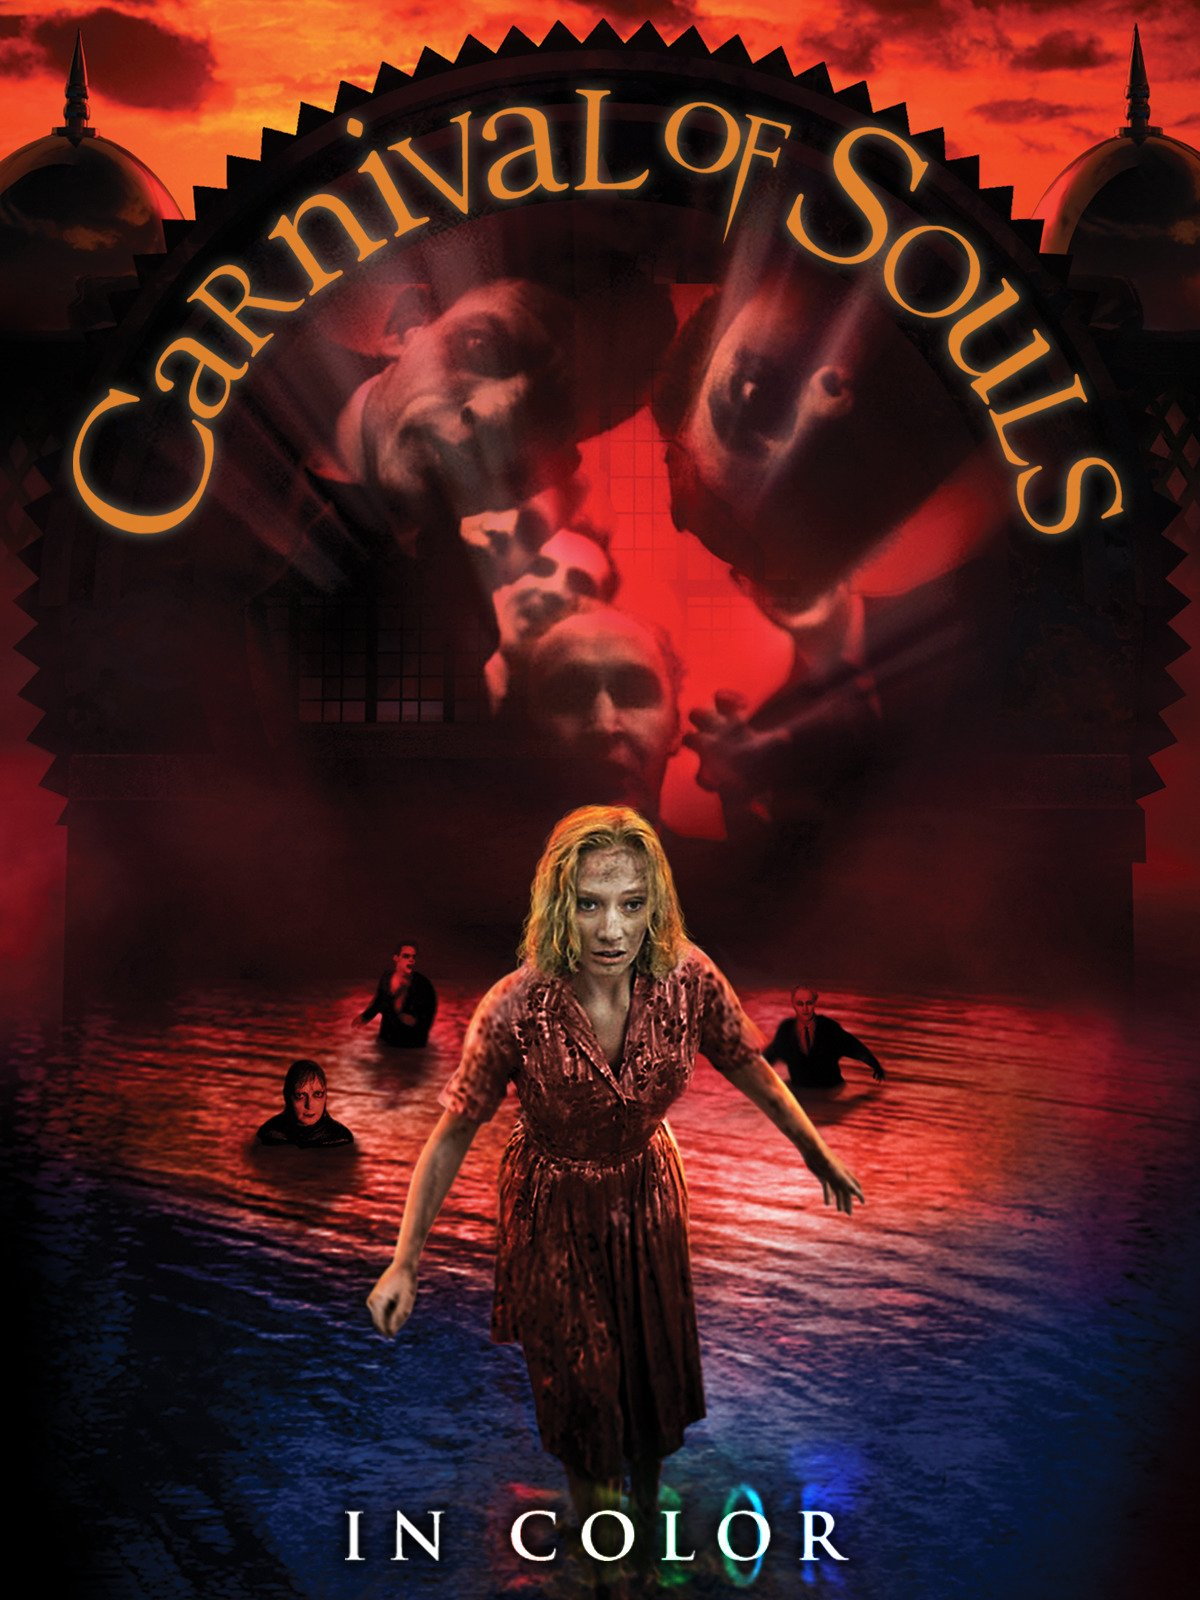 Carnival of Souls (in Color)